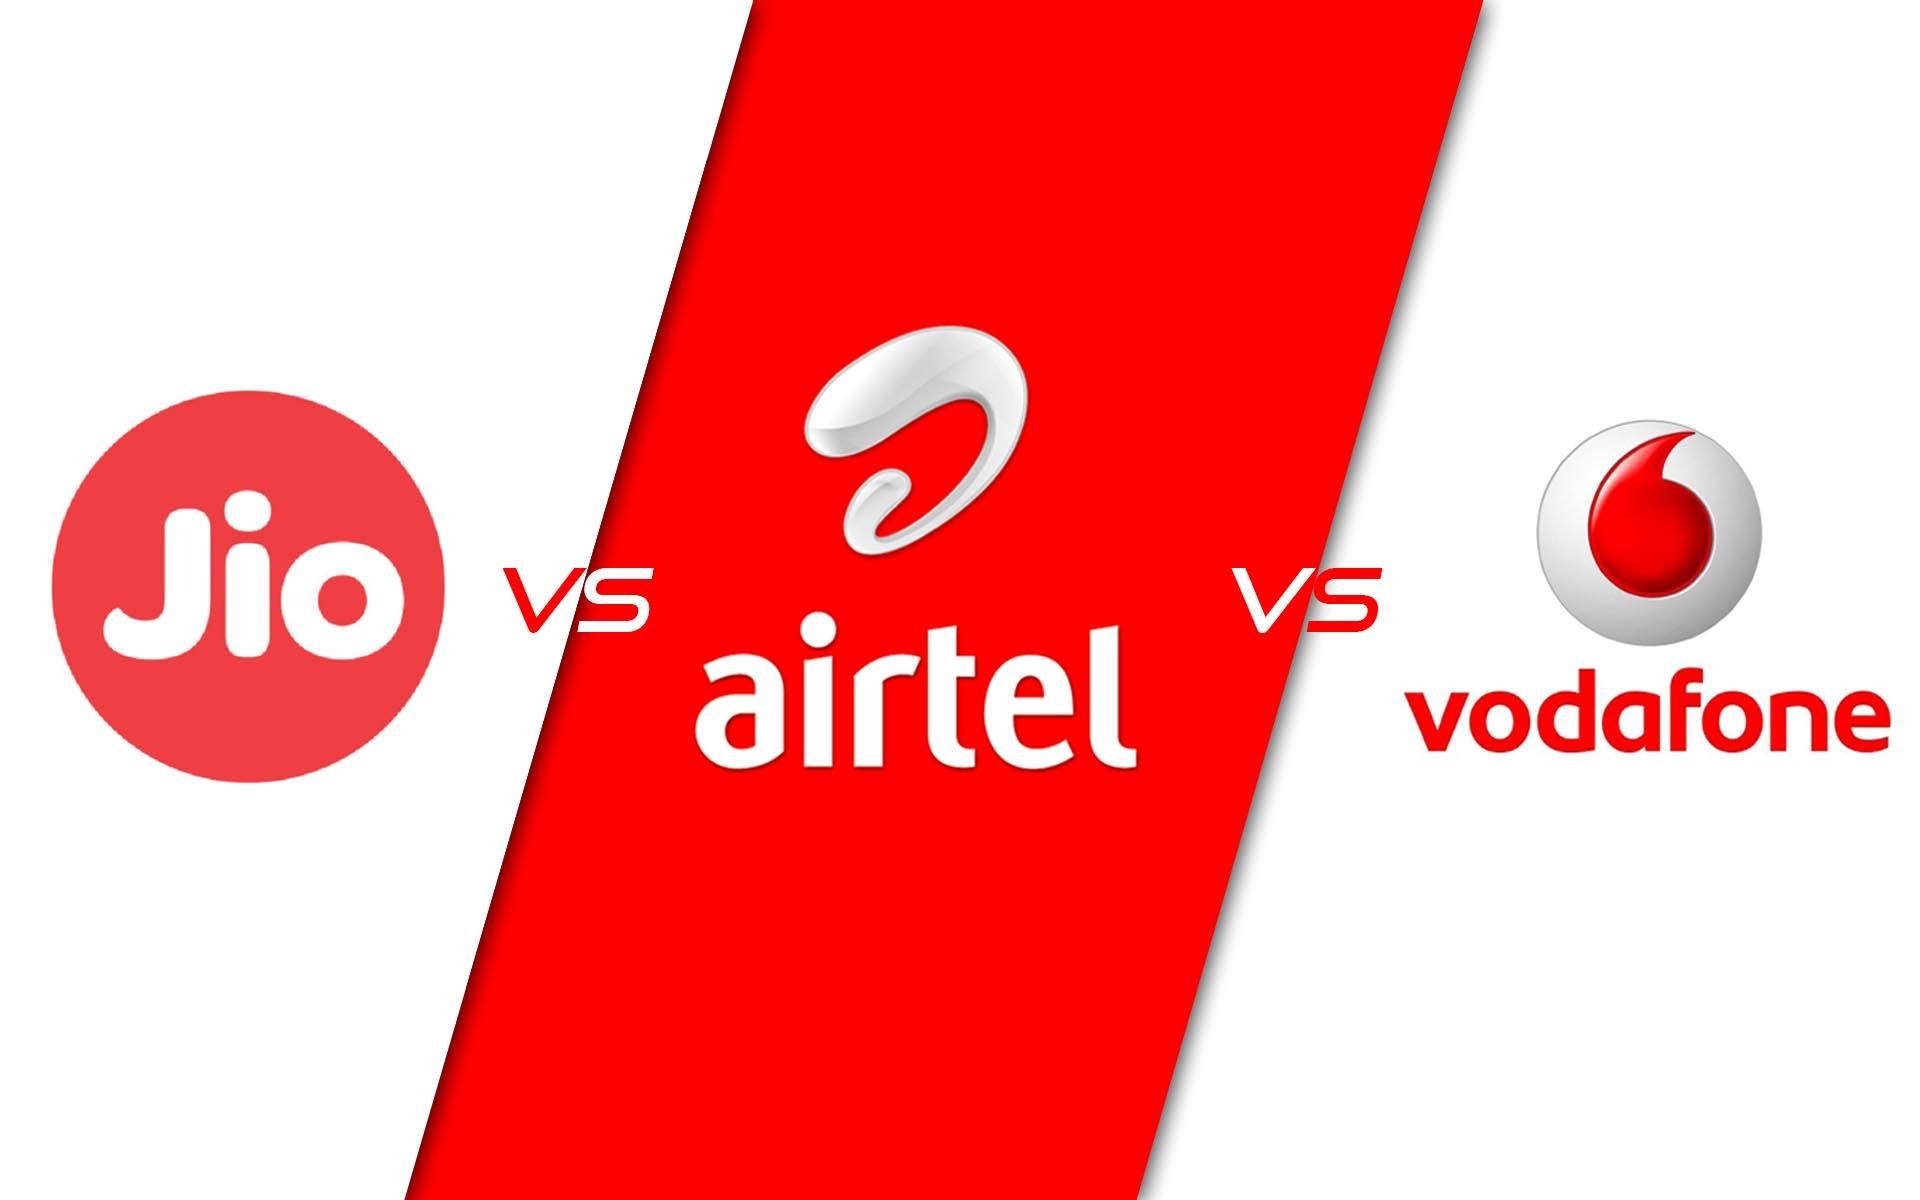 jio-reliance-airtel-vodafone